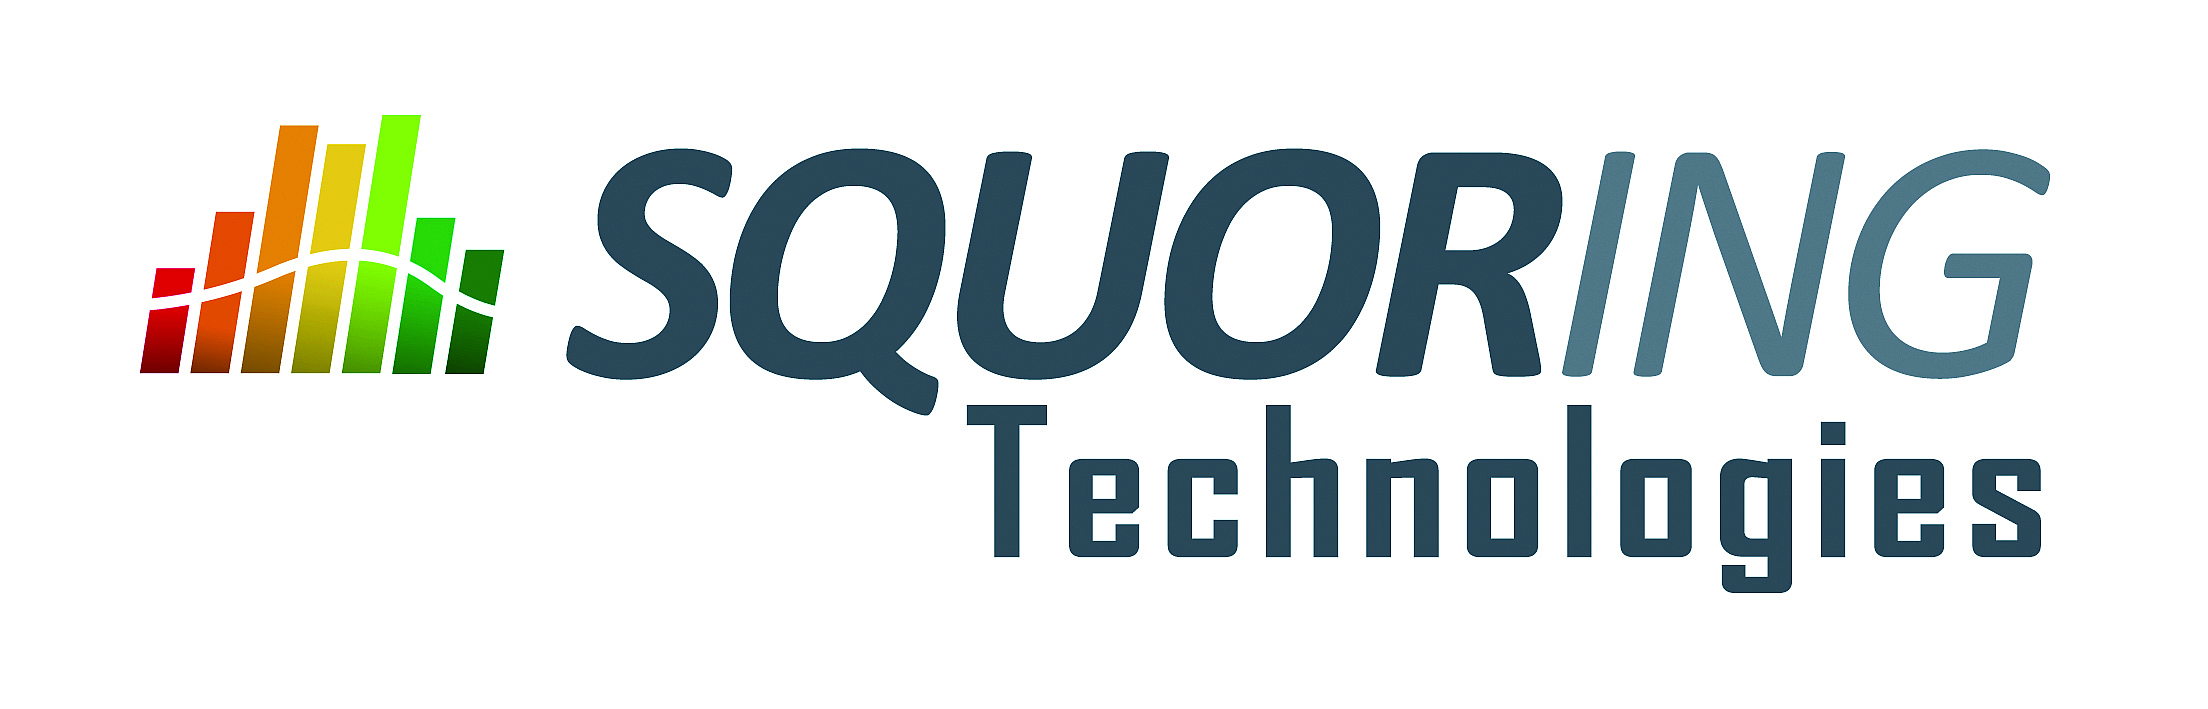 SQUORING Technologies - Ada World Logo PNG